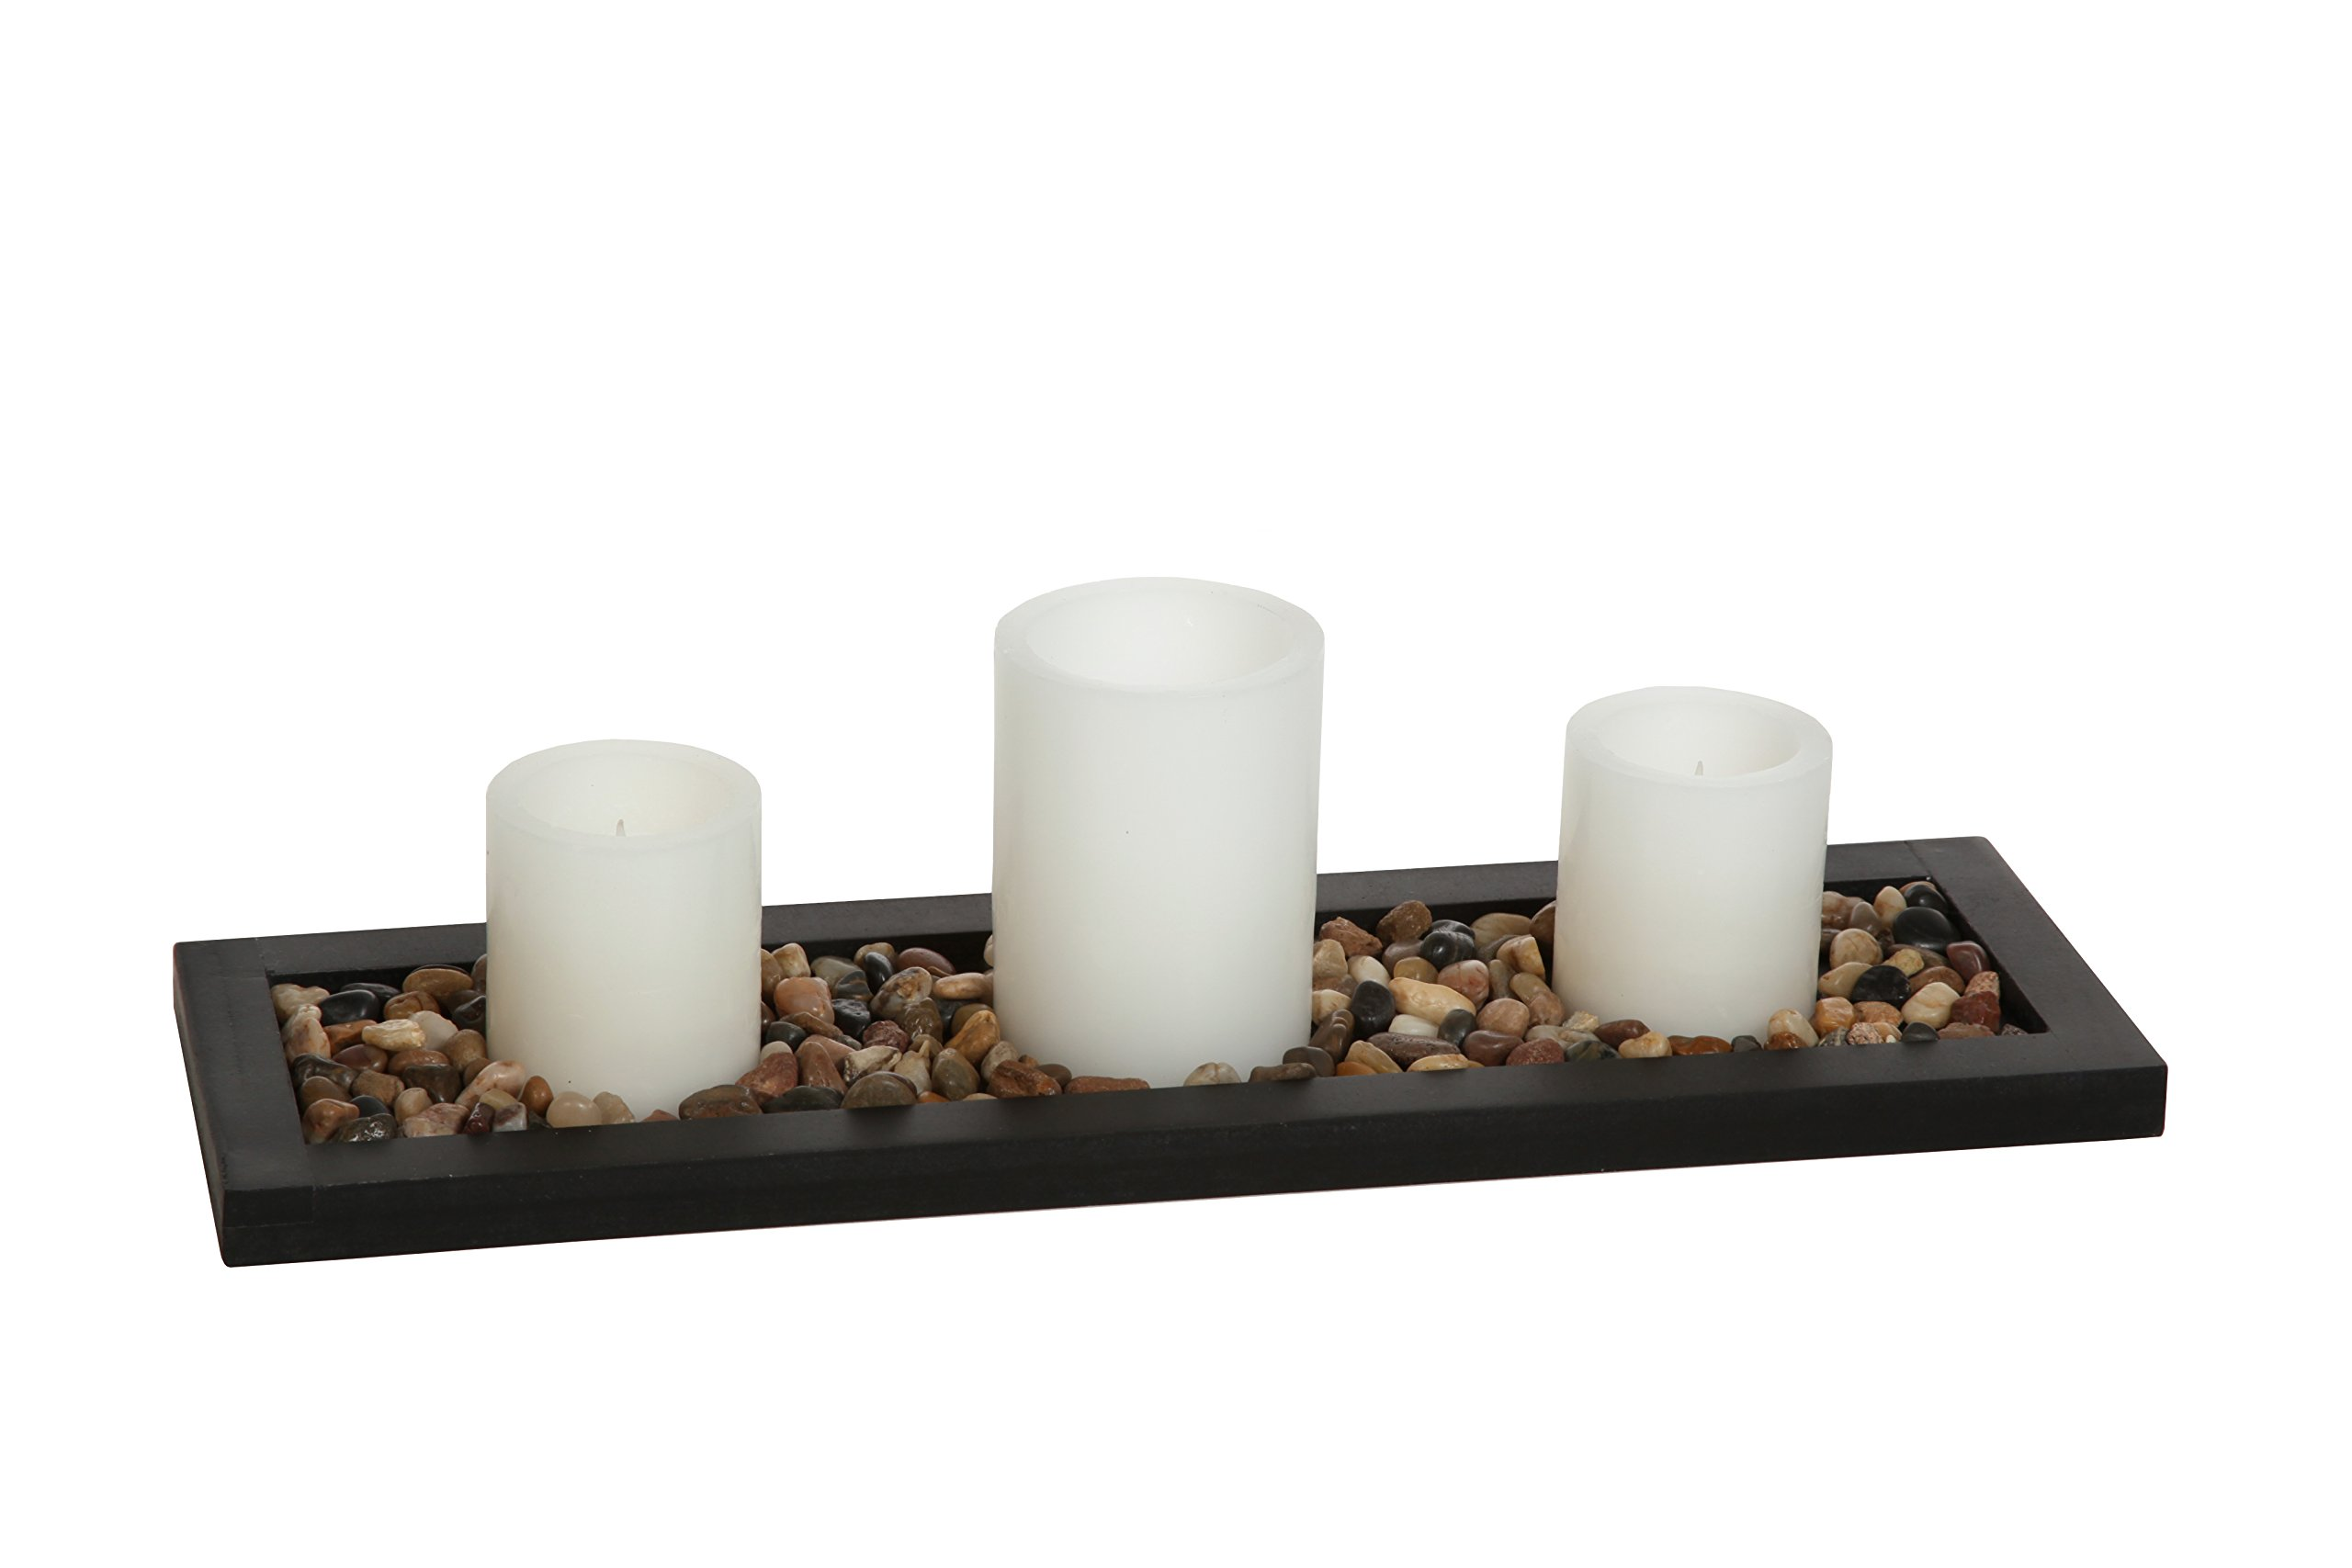 Hosley's Flameless LED Candle Gift Set - Set of 3 Pillar Candles, Decorative Pebbles and Wood Tray. Ideal Gift for Home Office, Wedding, Party, Family Room, Spa, Aromatherapy, Candle Gardens O6